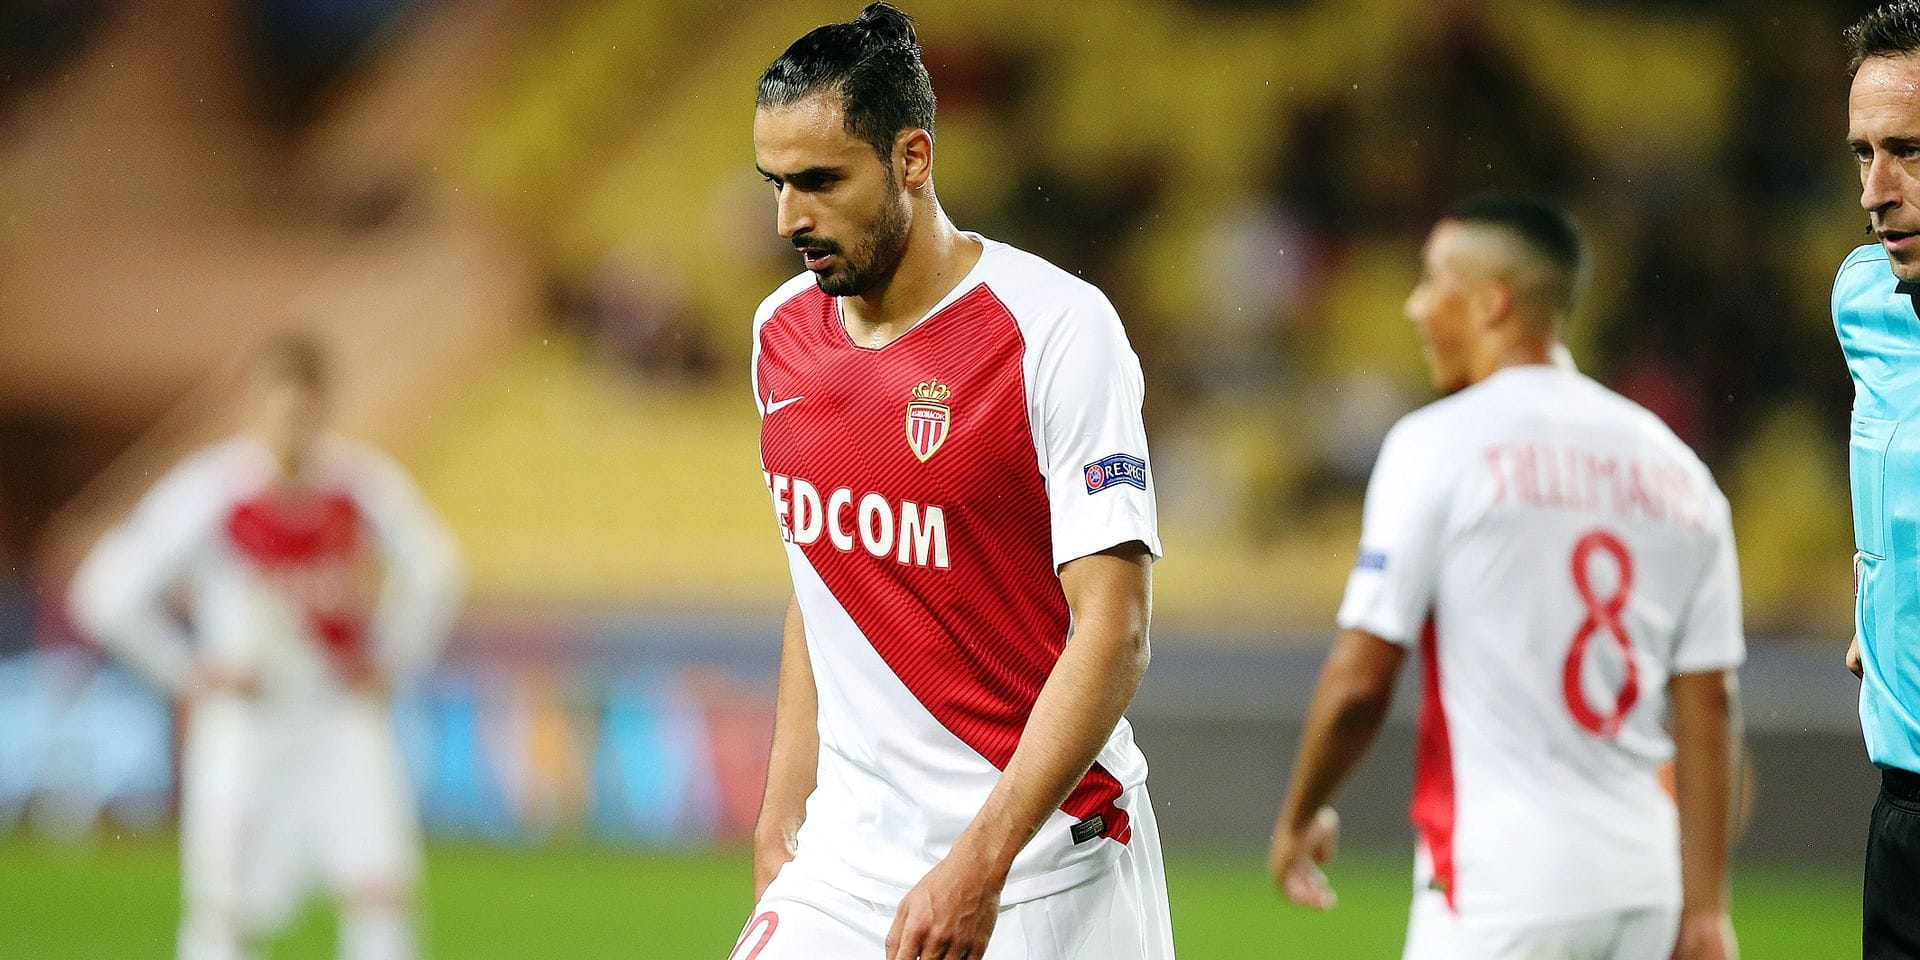 Monaco's Nacer Chadli looks dejected during a game between AS Monaco and Belgian soccer team Club Brugge KV in the Principality of Monaco, Tuesday 06 November 2018, on day four of the UEFA Champions League, in group A. BELGA PHOTO BRUNO FAHY